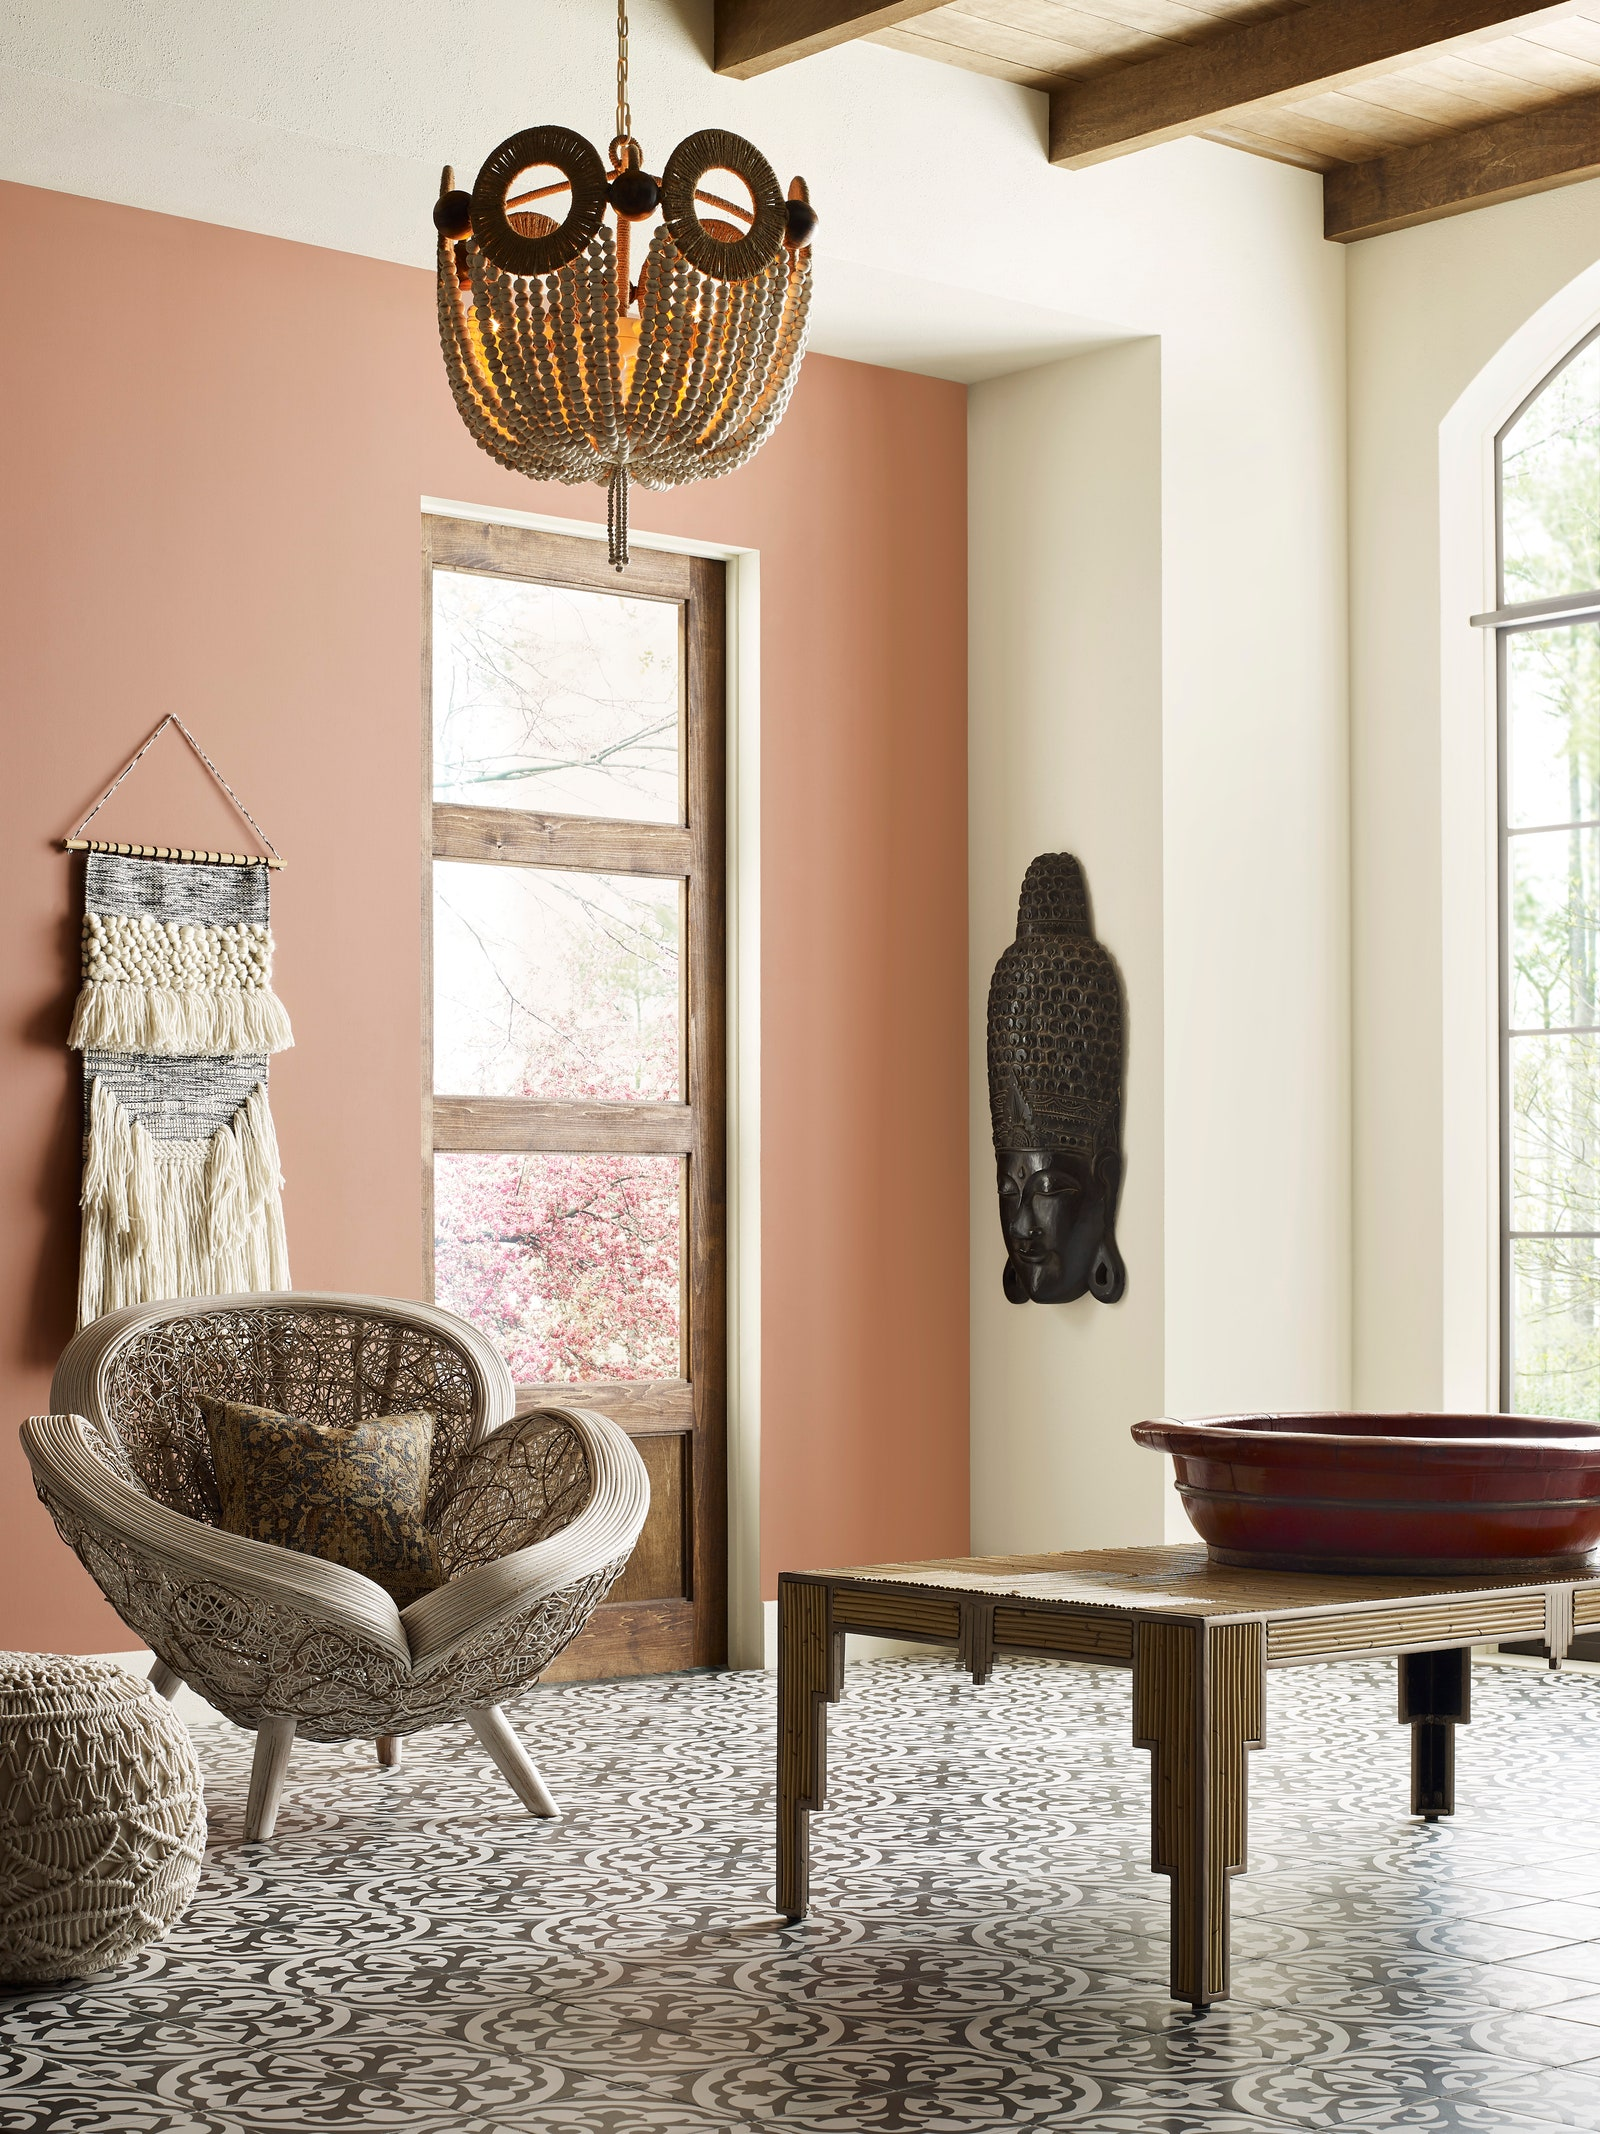 Sherwin-Williams 2021 Colormix Forecast Reddened earth paint showcase